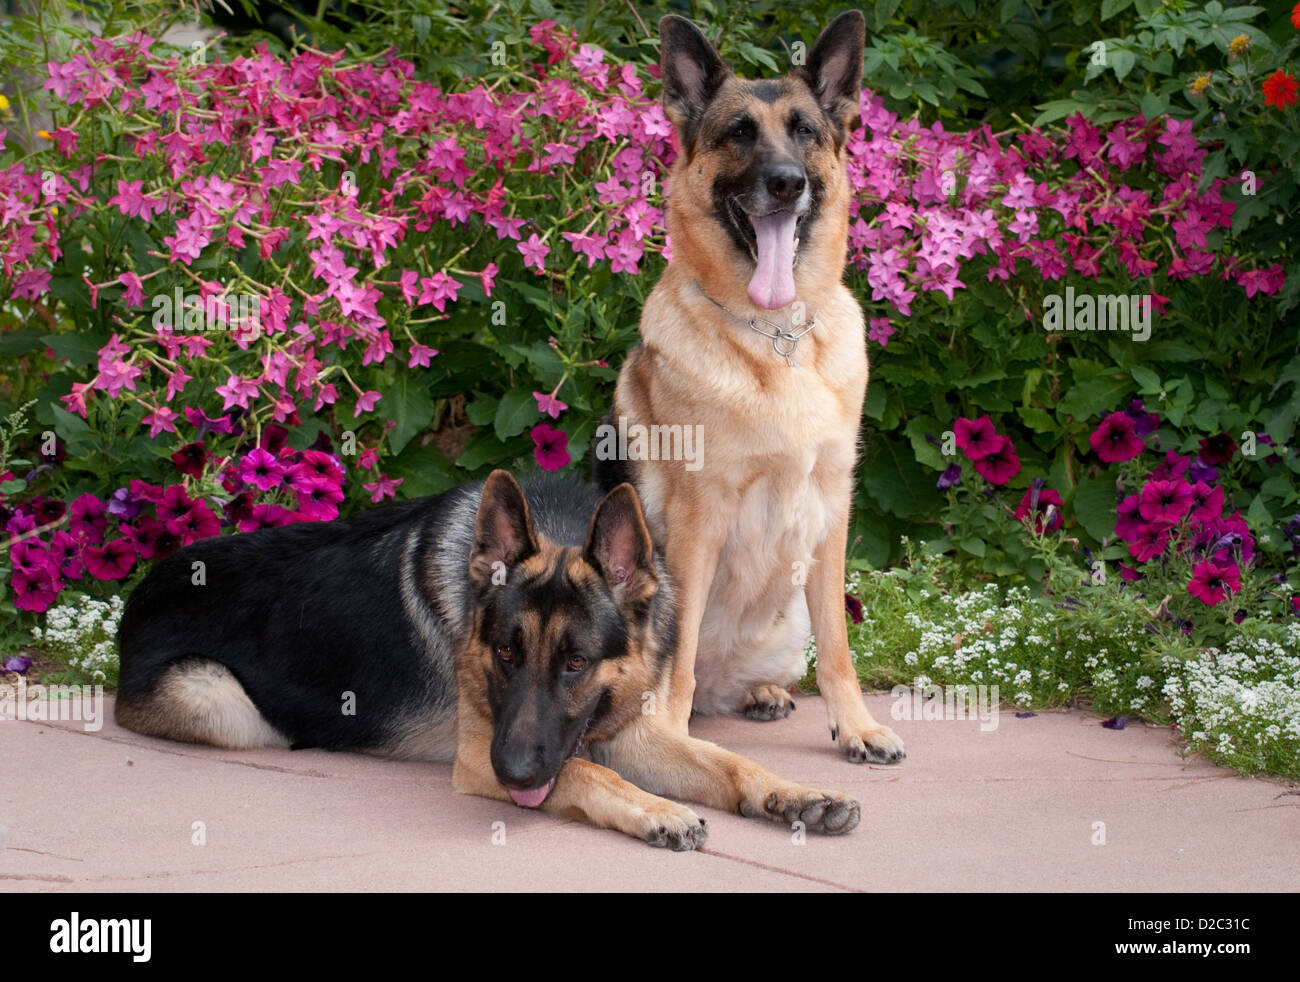 Two German Shepherd Dogs-one sitting and other lying down - Stock Image